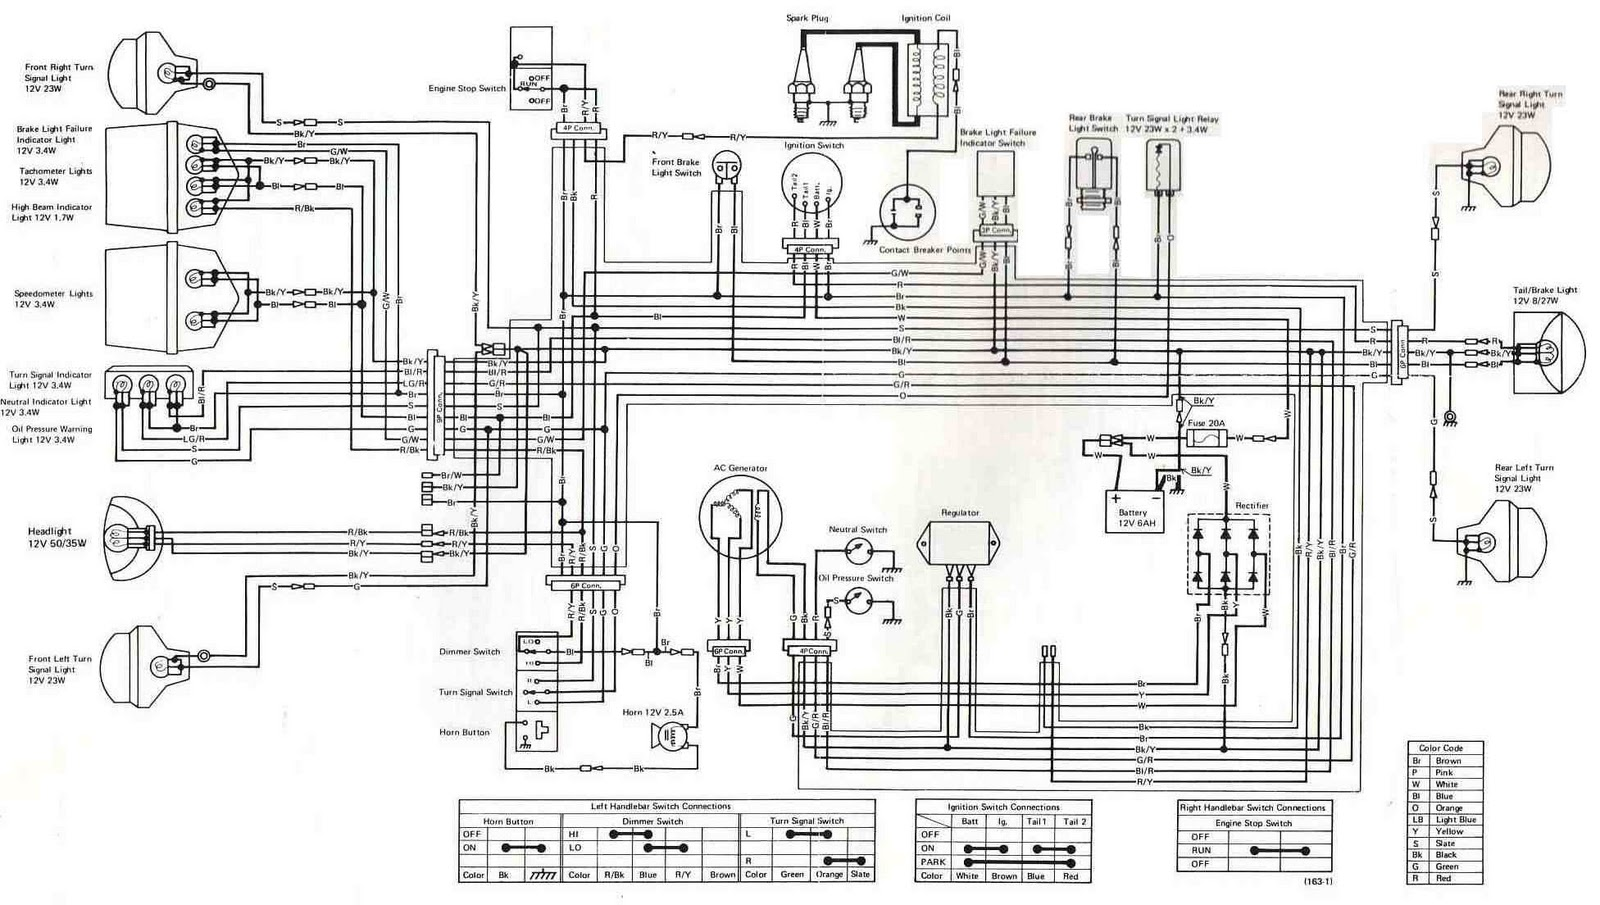 kz900 wireing diagram wiring schematic Kawasaki Mule 3010 Wiring Schematic kz400 wiring diagram simplified wiring diagrams garage wiring diagram kz400 wiring diagram box wiring diagram